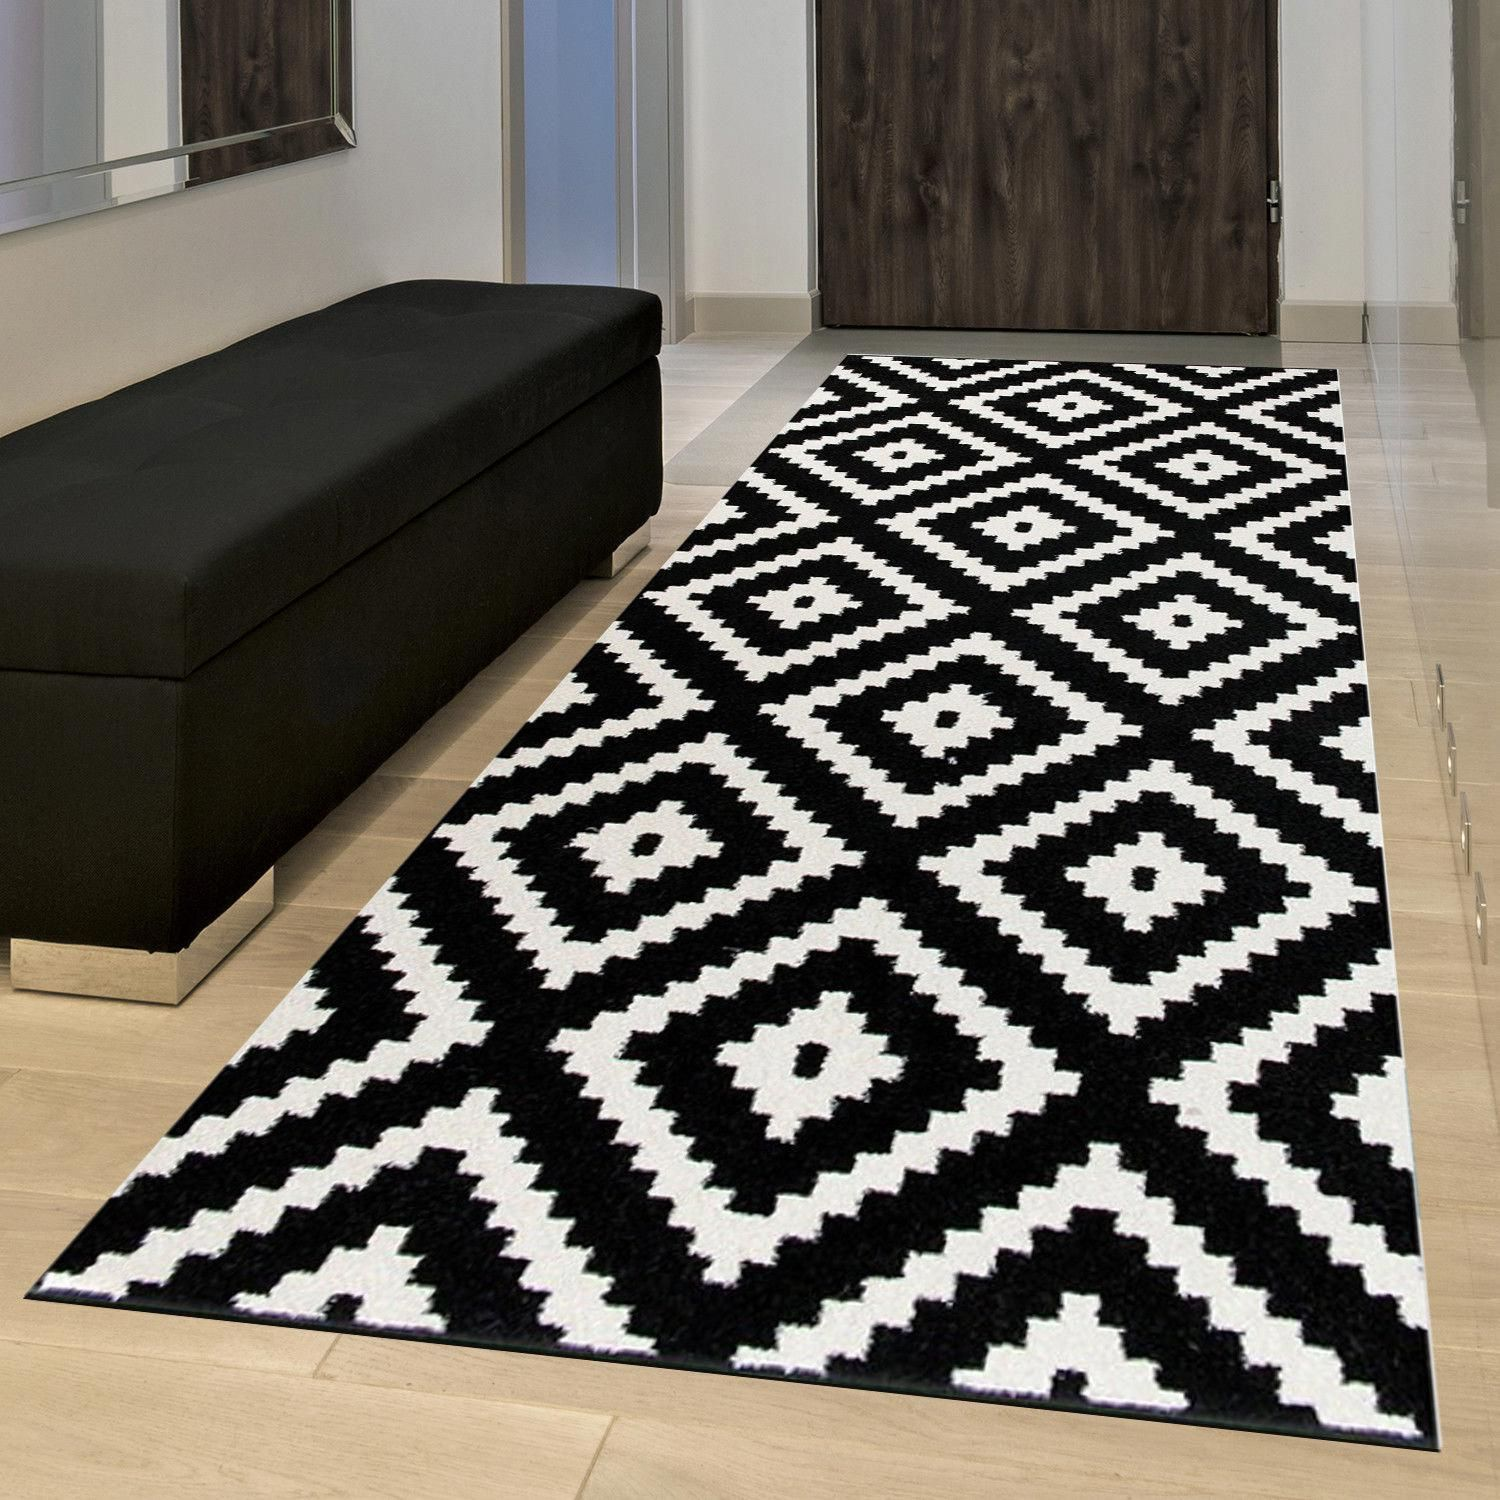 Carpet Runners By The Foot Lowes Carpetstairrunnerslowes | Cheap Carpet Runners By The Foot